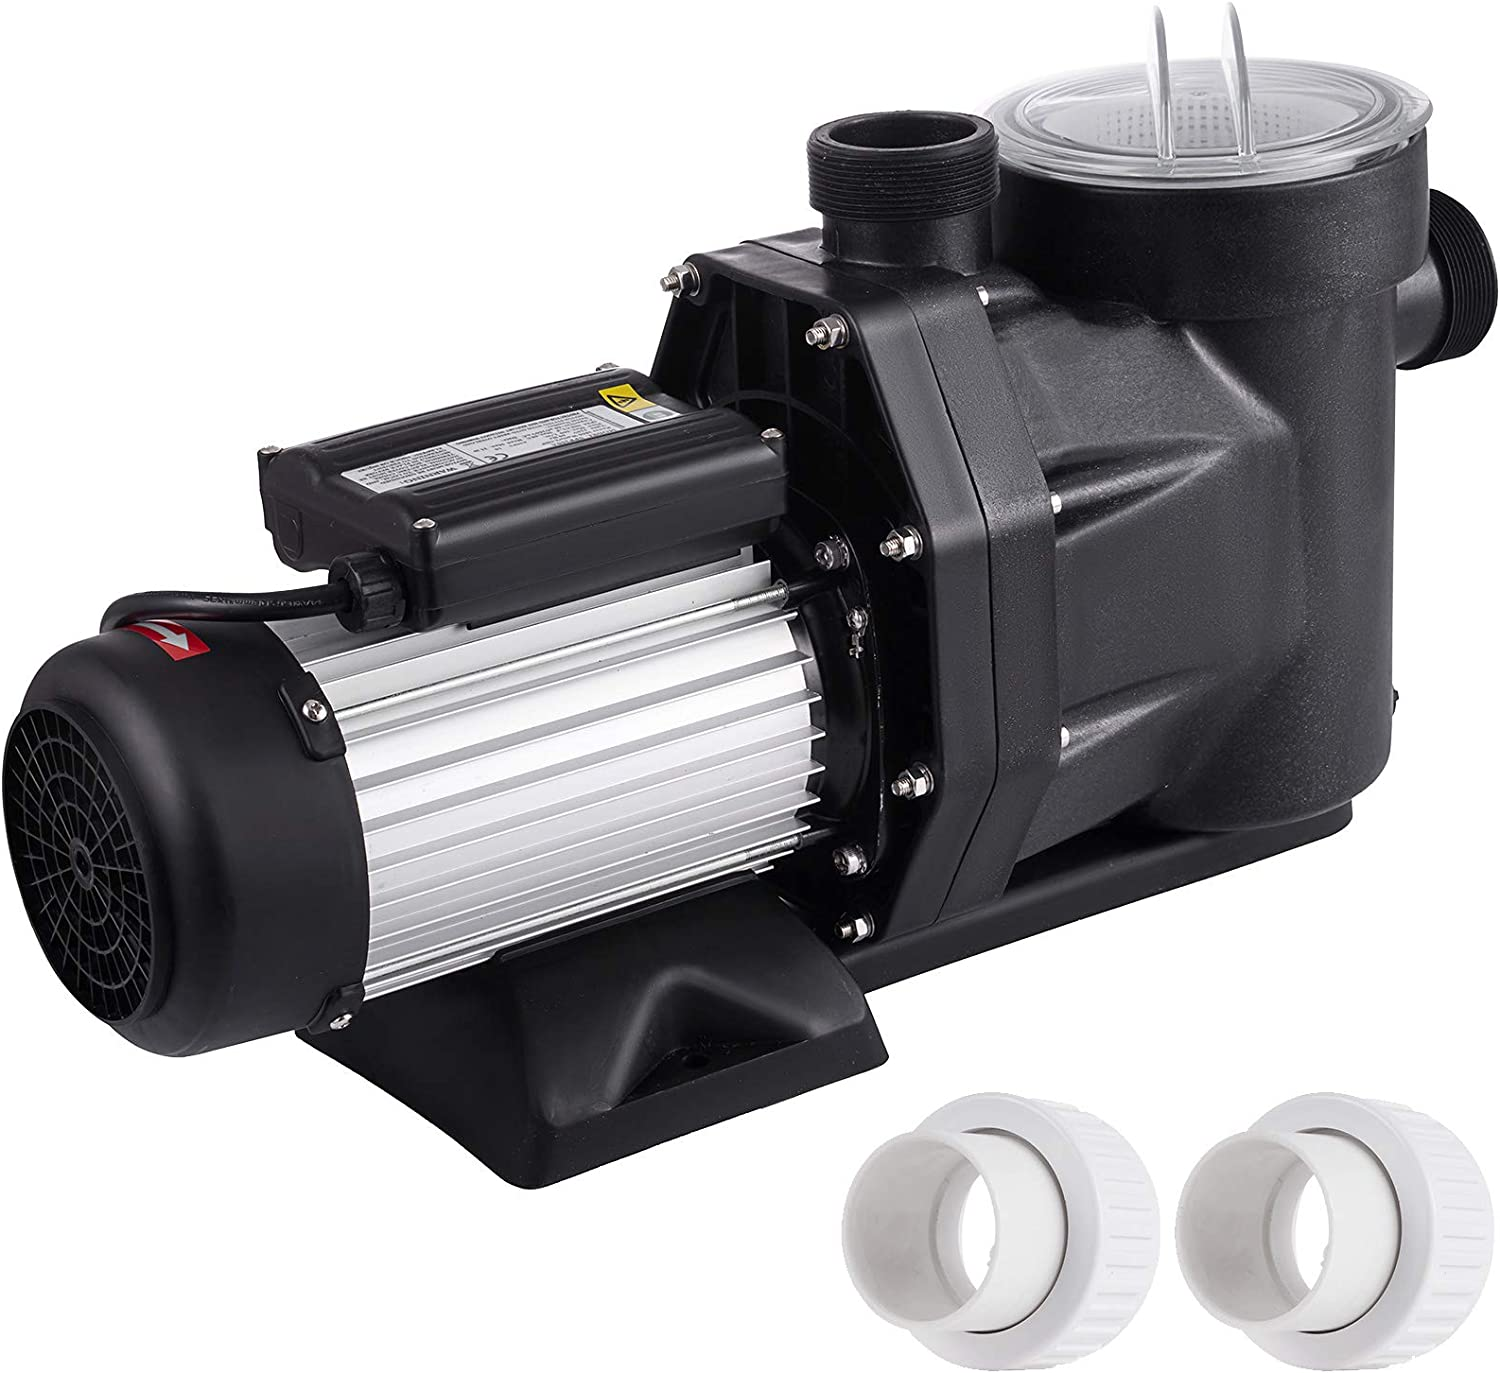 SmarketBuy 2.5HP Swimming Pool Pumps, Single Speed 110V High Flow Pool Pump, Power 1850W Flow 560L/M Head 21M, Above Ground Pool Pumps with Strainer Basket, 2Pc Connector for 1.5